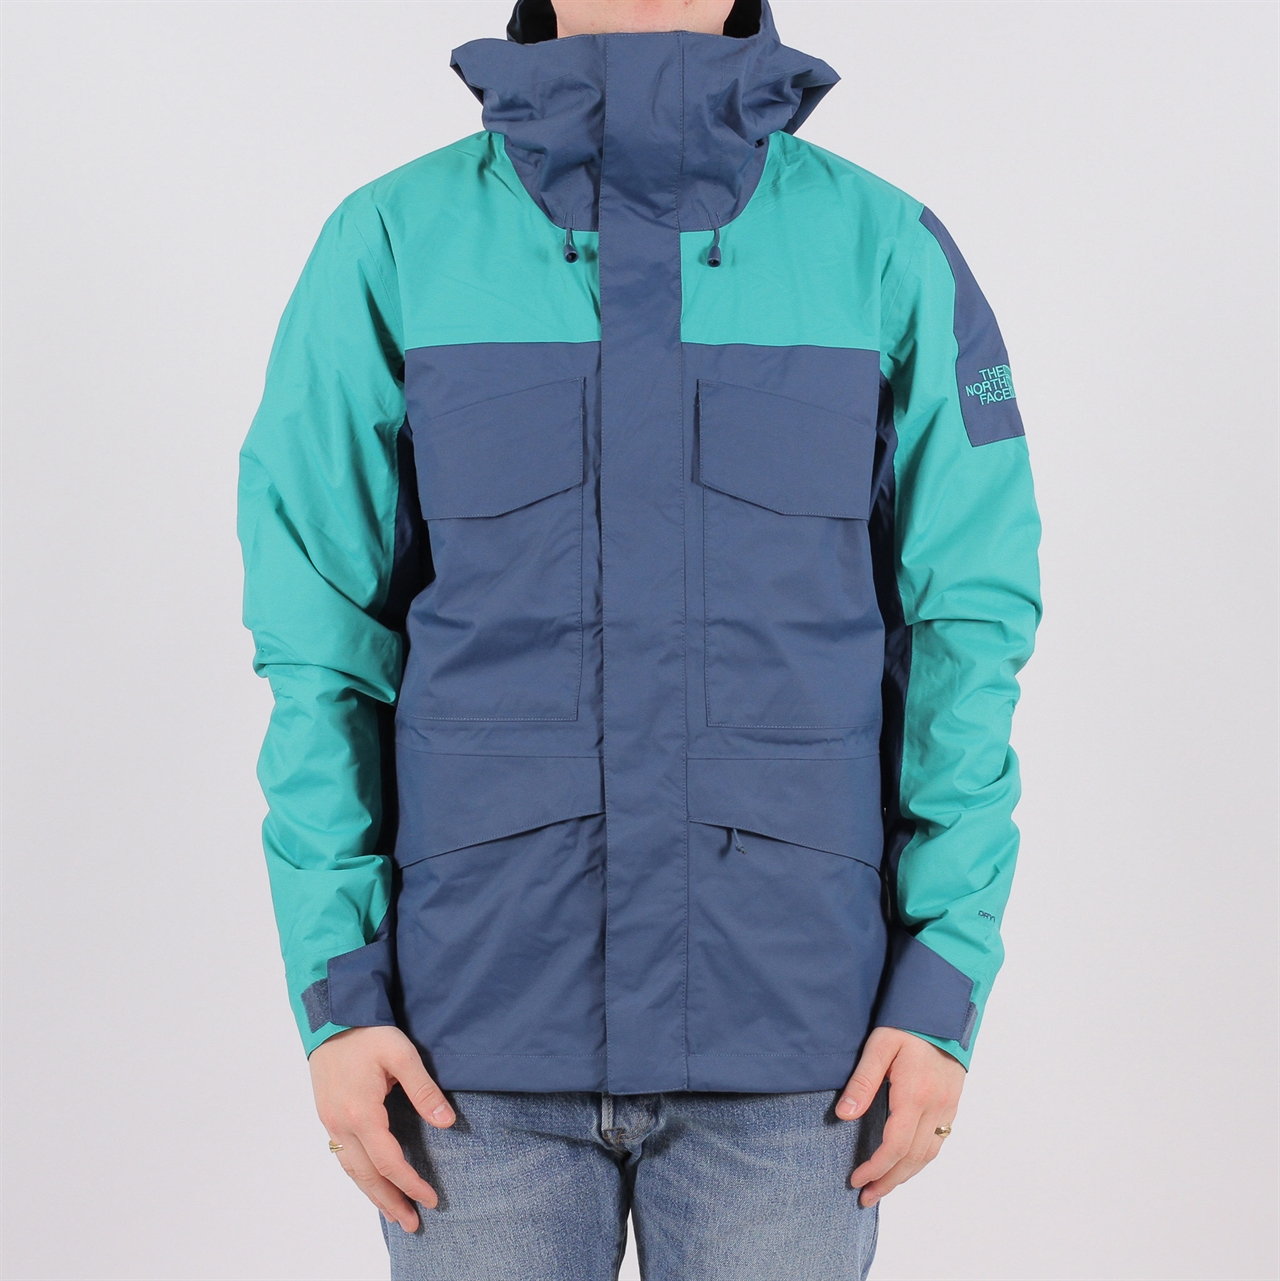 869062b772fd Shelta - The North Face Fantasy Ridge Jacket Blue Wing Teal Porcelain